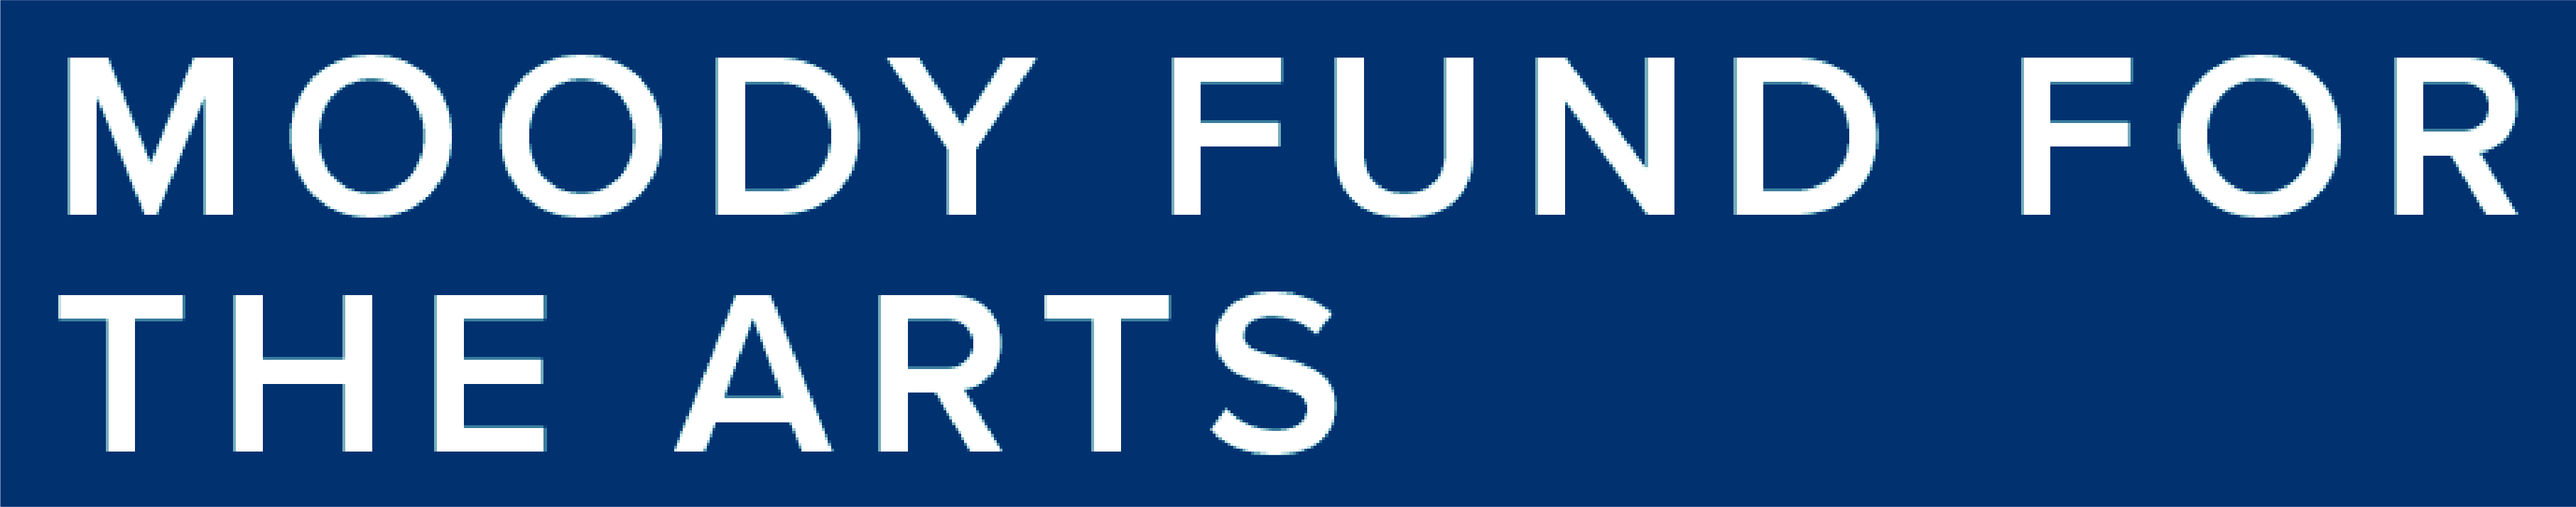 mfa_logo_box_blue.jpg